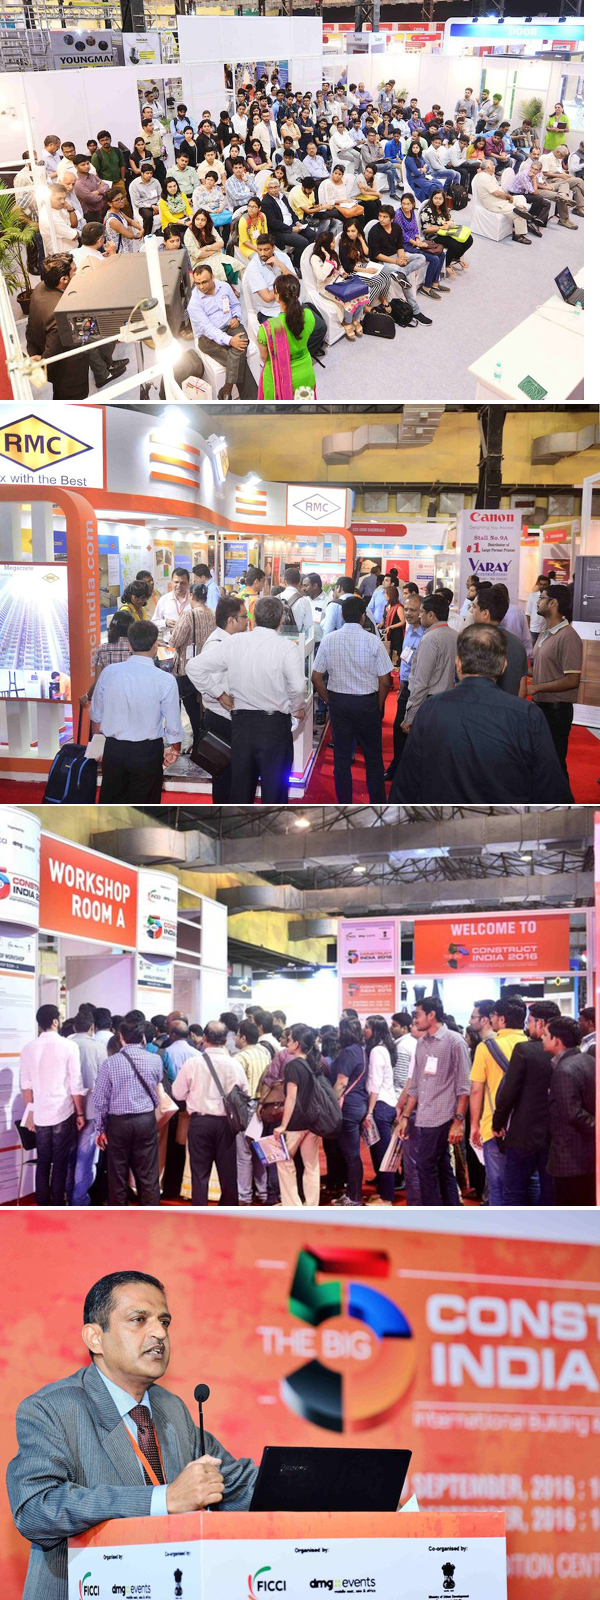 Gathering over 7,000 visitors, The Big 5 Construct India celebrates its fifth anniversary this year.